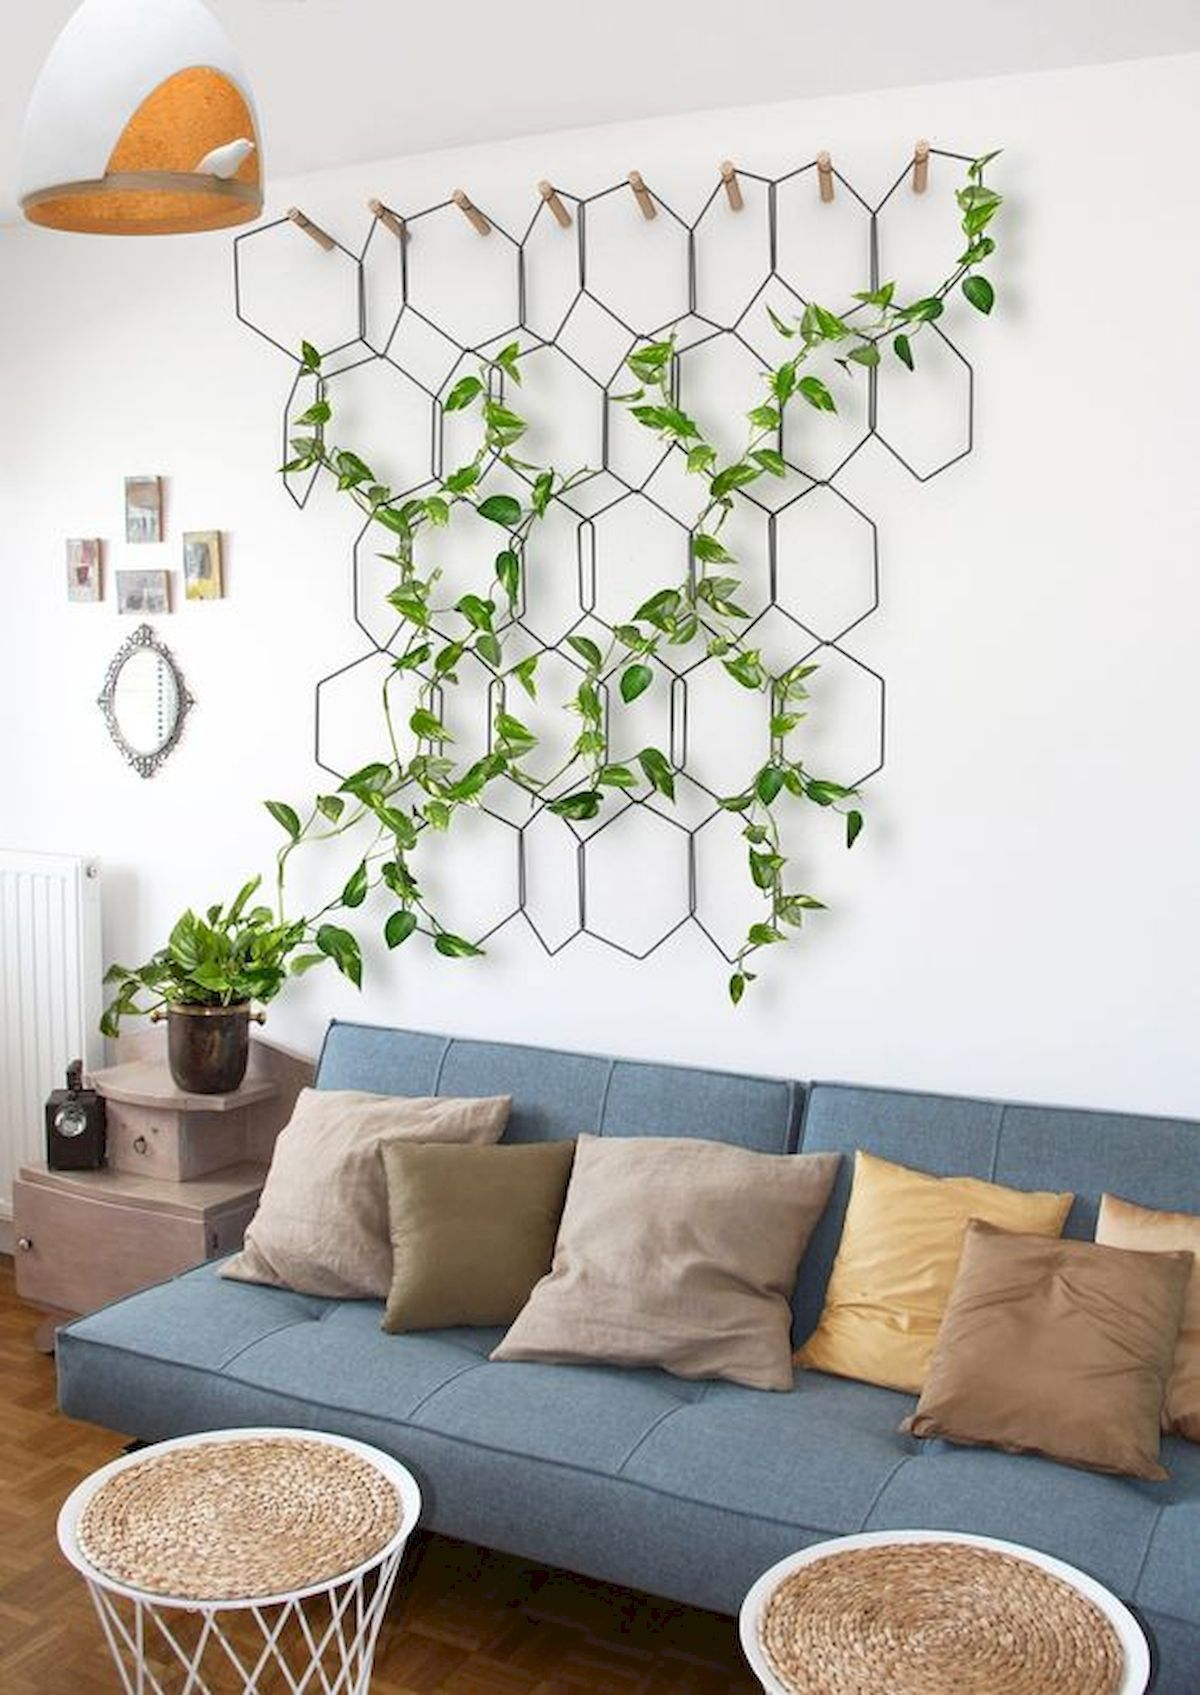 2019 Best Living Room Wall Art Ideas And Decorations 17 With Images Plant Decor Indoor Indoor Vines